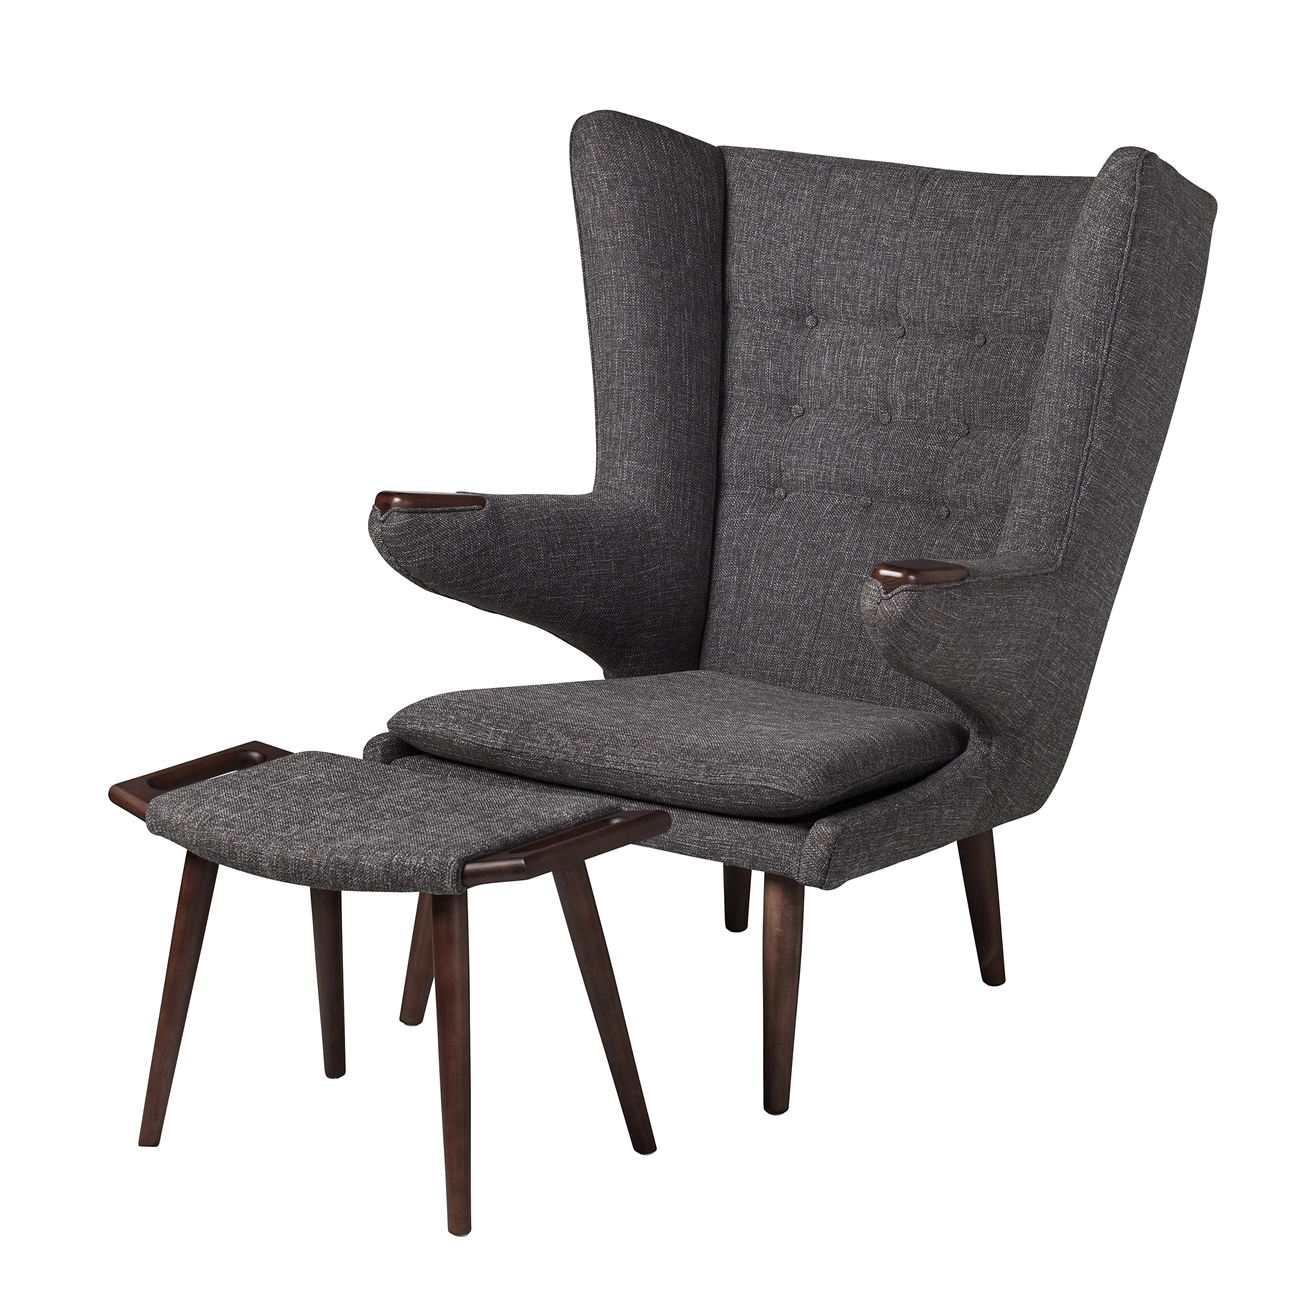 papa bear chair. Papa Bear Inspired Chair With Ottoman-Charcoal M